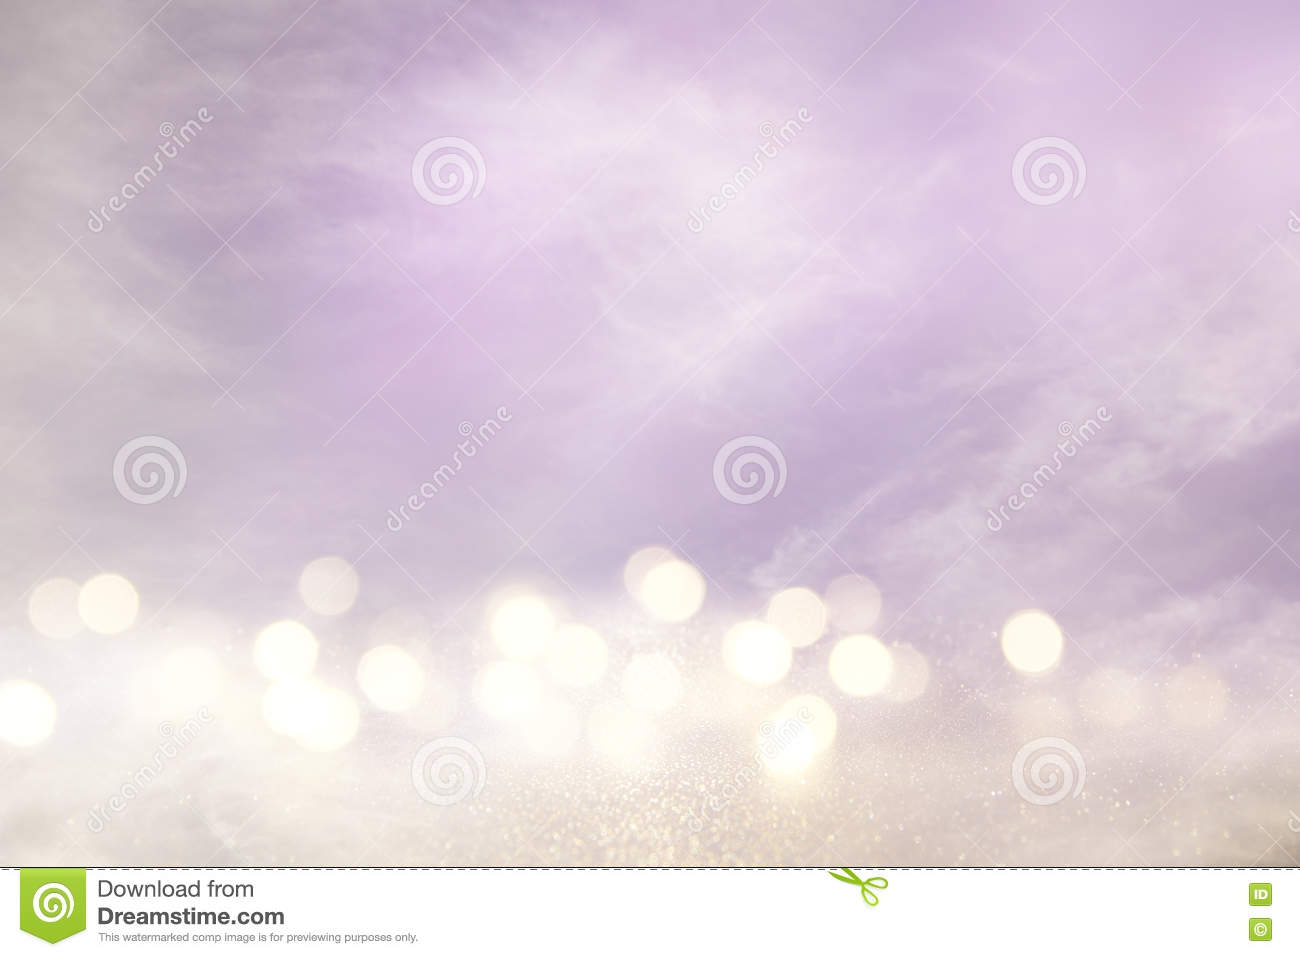 pink, light purple and silver abstract bokeh lights